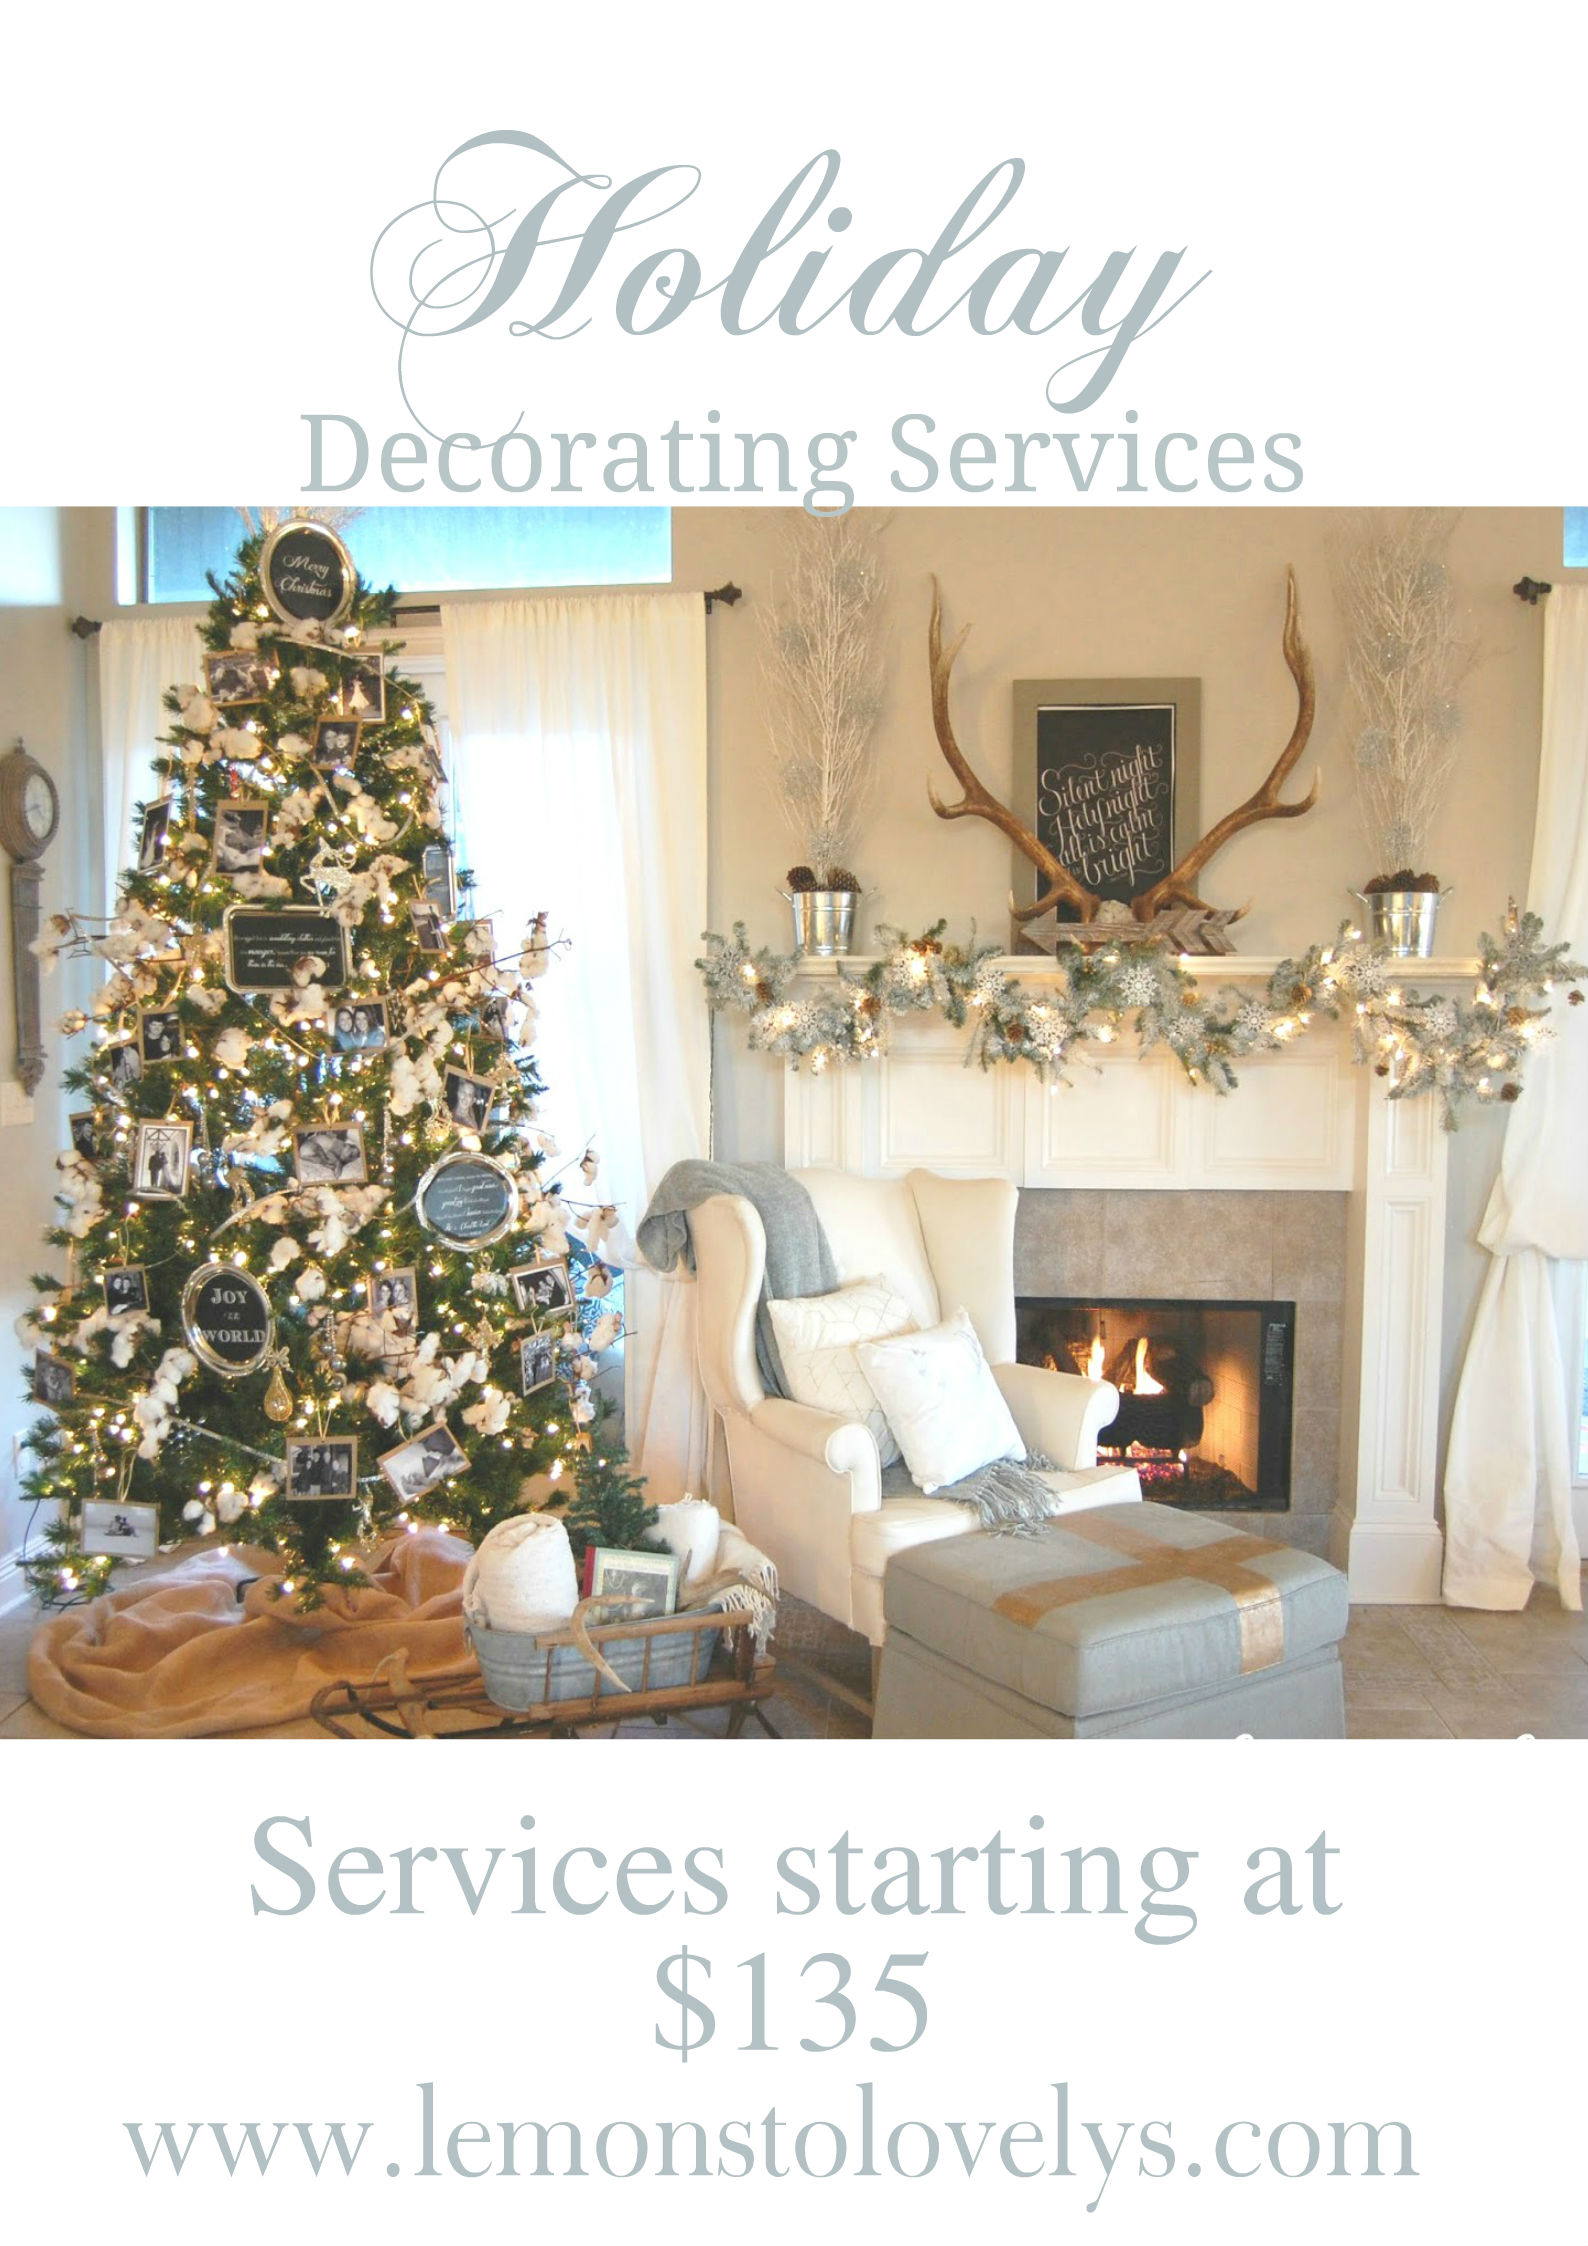 Holiday Decorating Services – Lemons to Lovelys